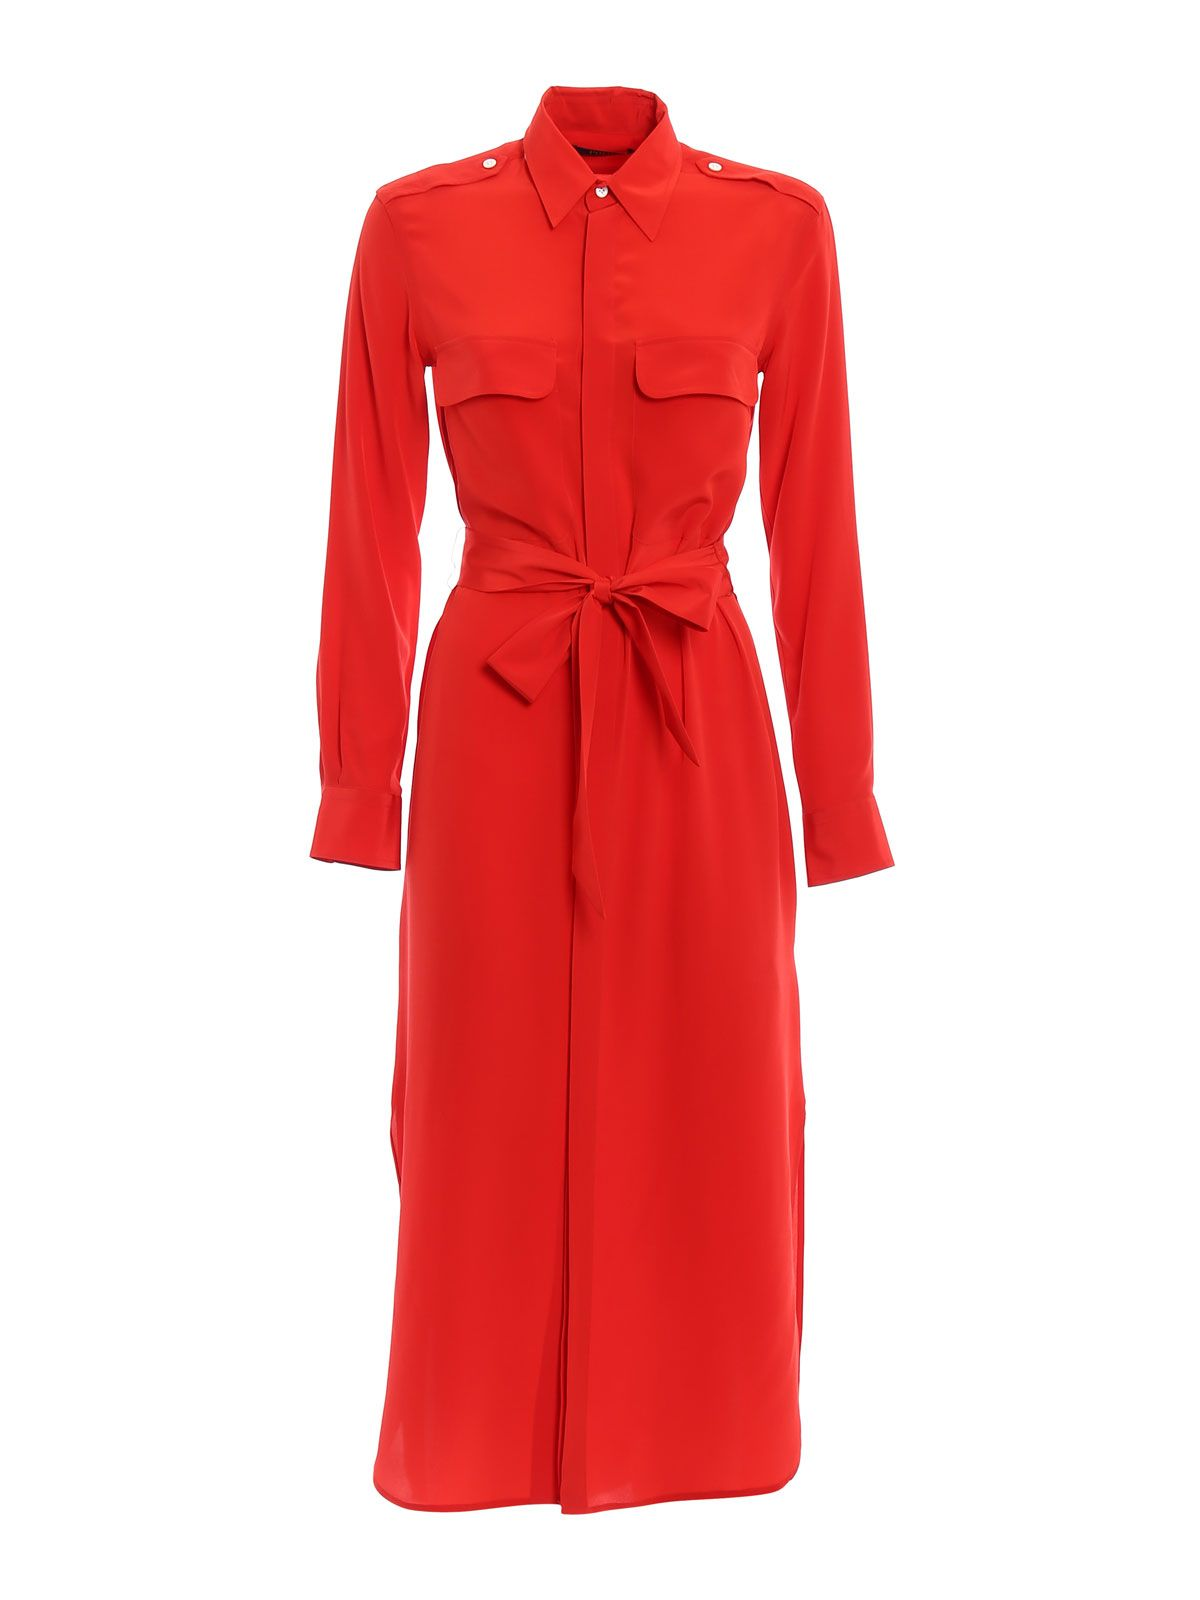 Polo Ralph Lauren Crepe De Chine Shirt Dress